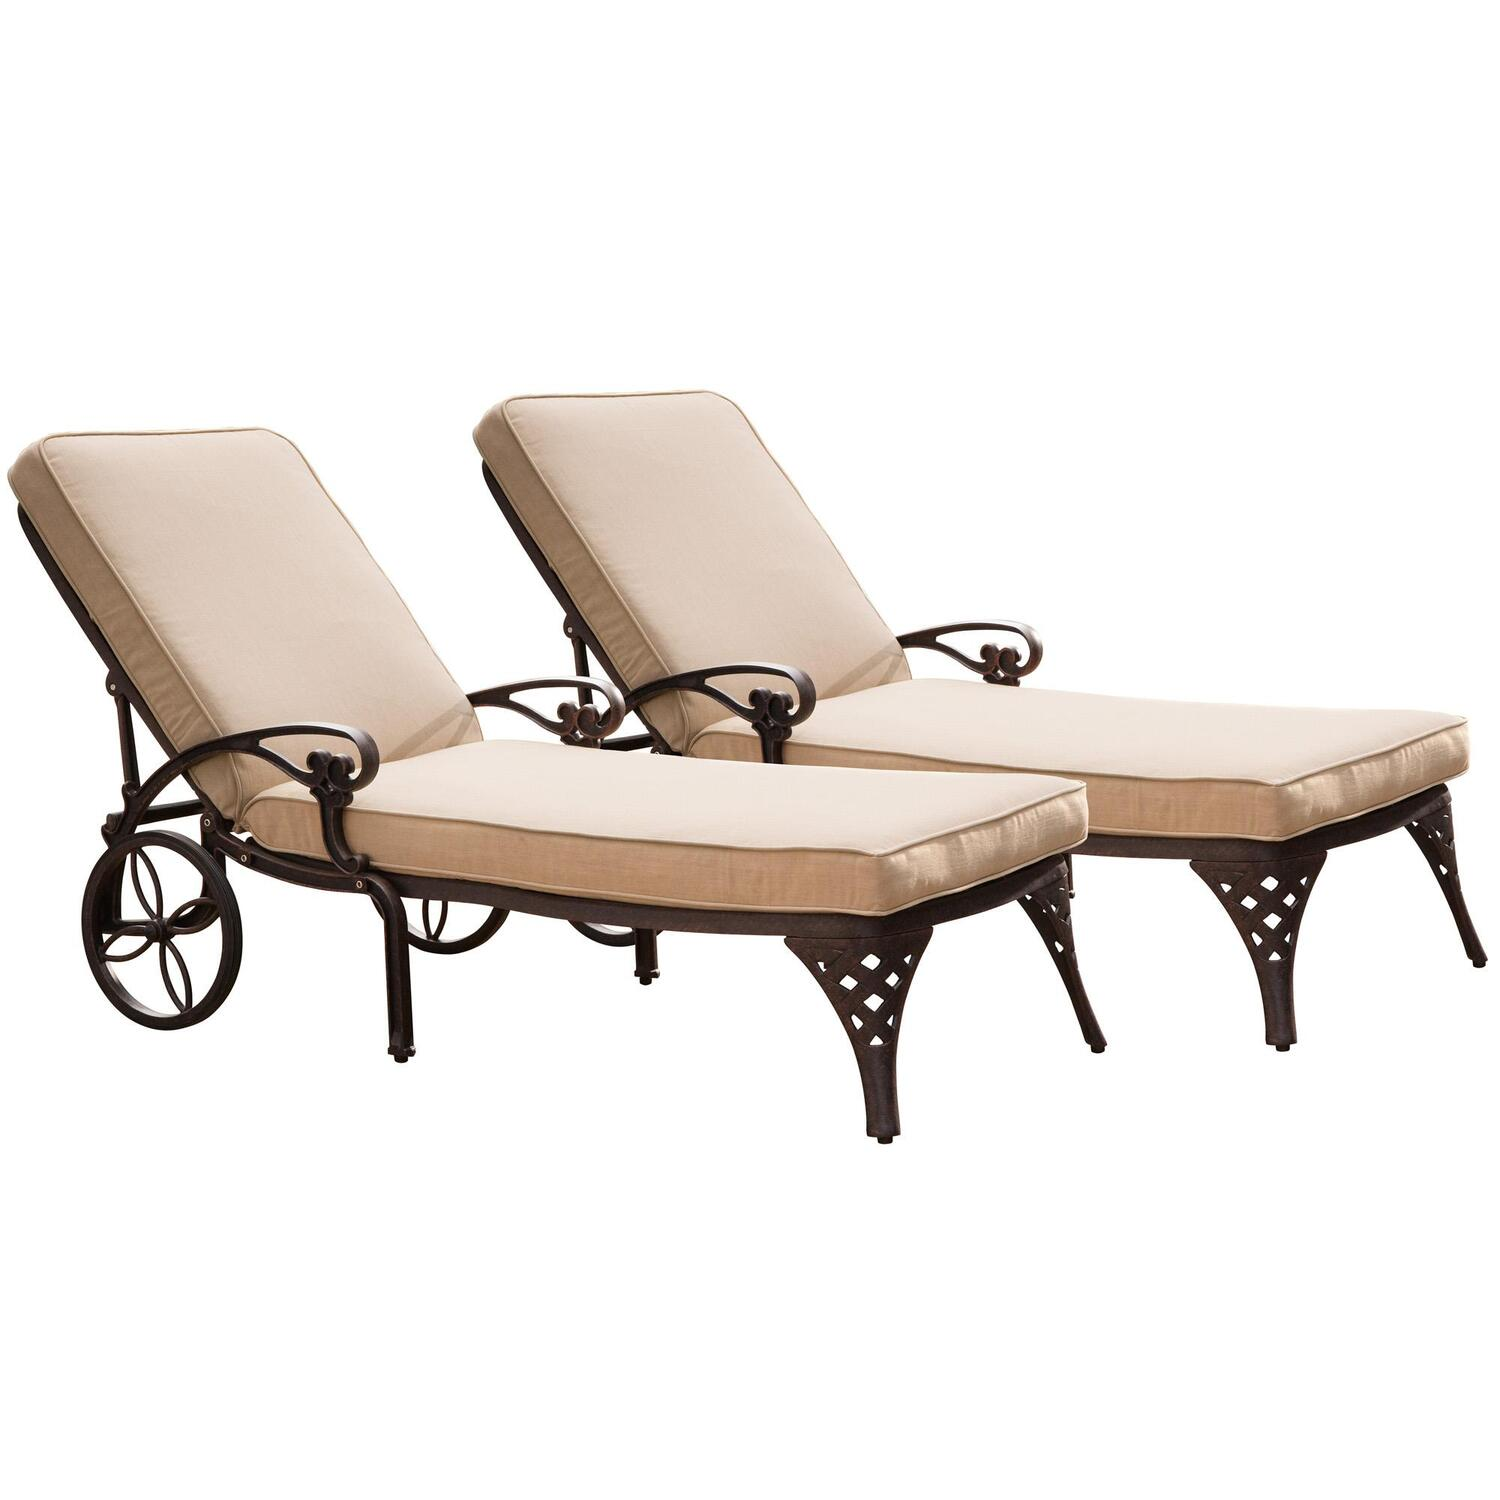 Home Styles Biscayne Chaise Lounge Chairs 2 Cushions by OJ merce $1 070 79 $1 692 16